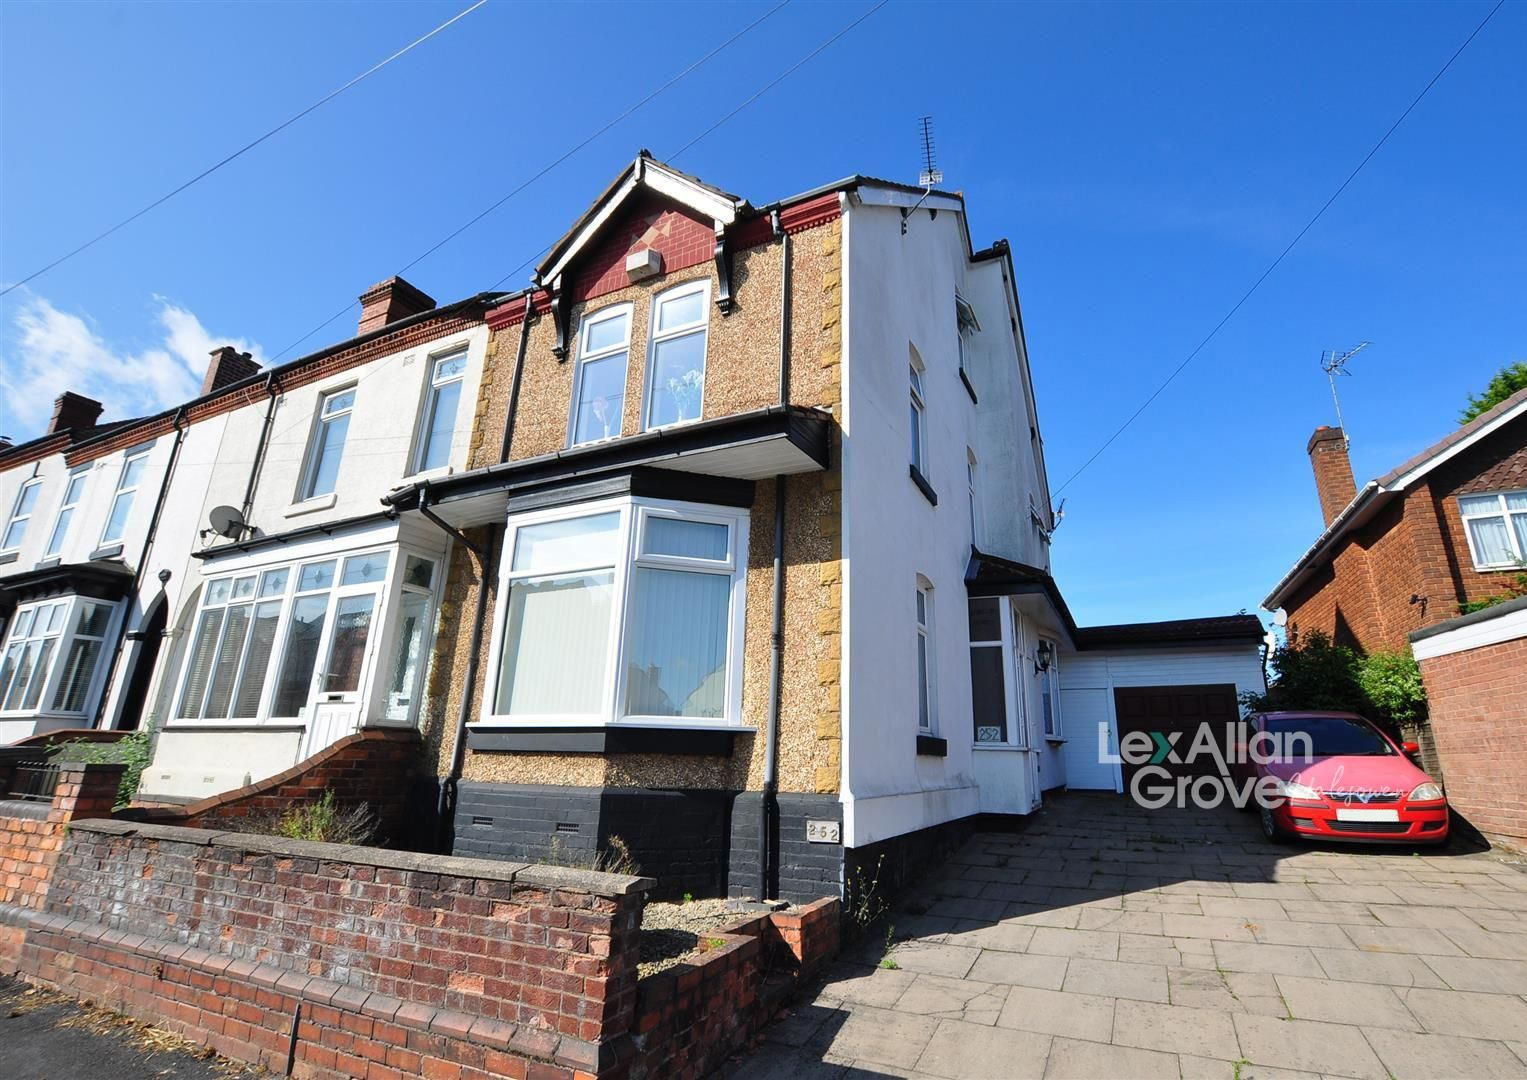 5 bed end-of-terrace for sale, B62